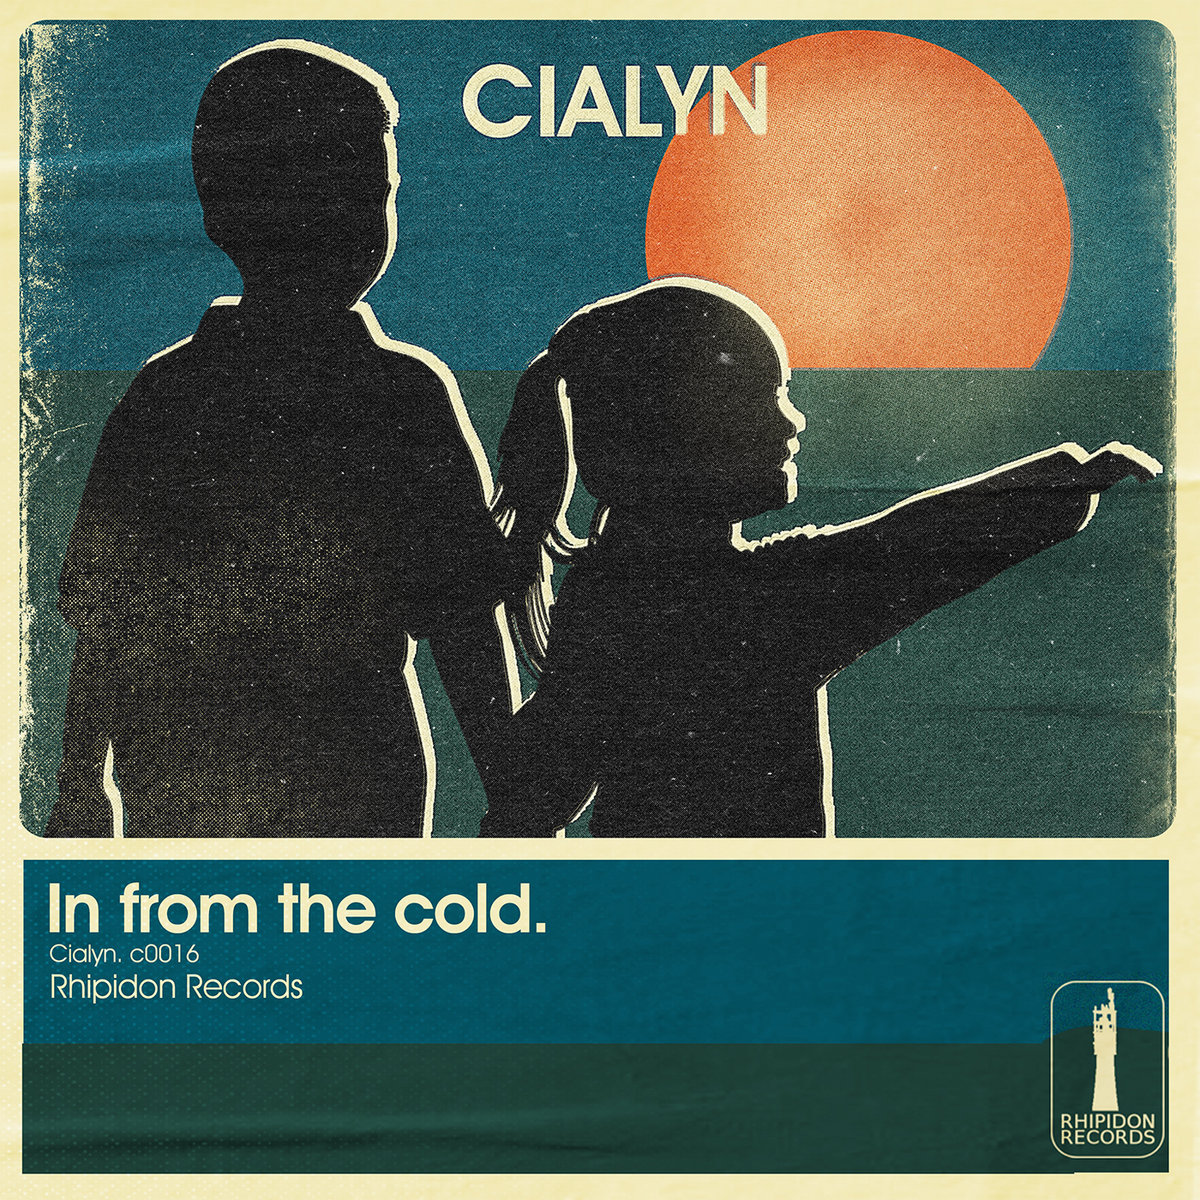 CIALYN – In from the cold